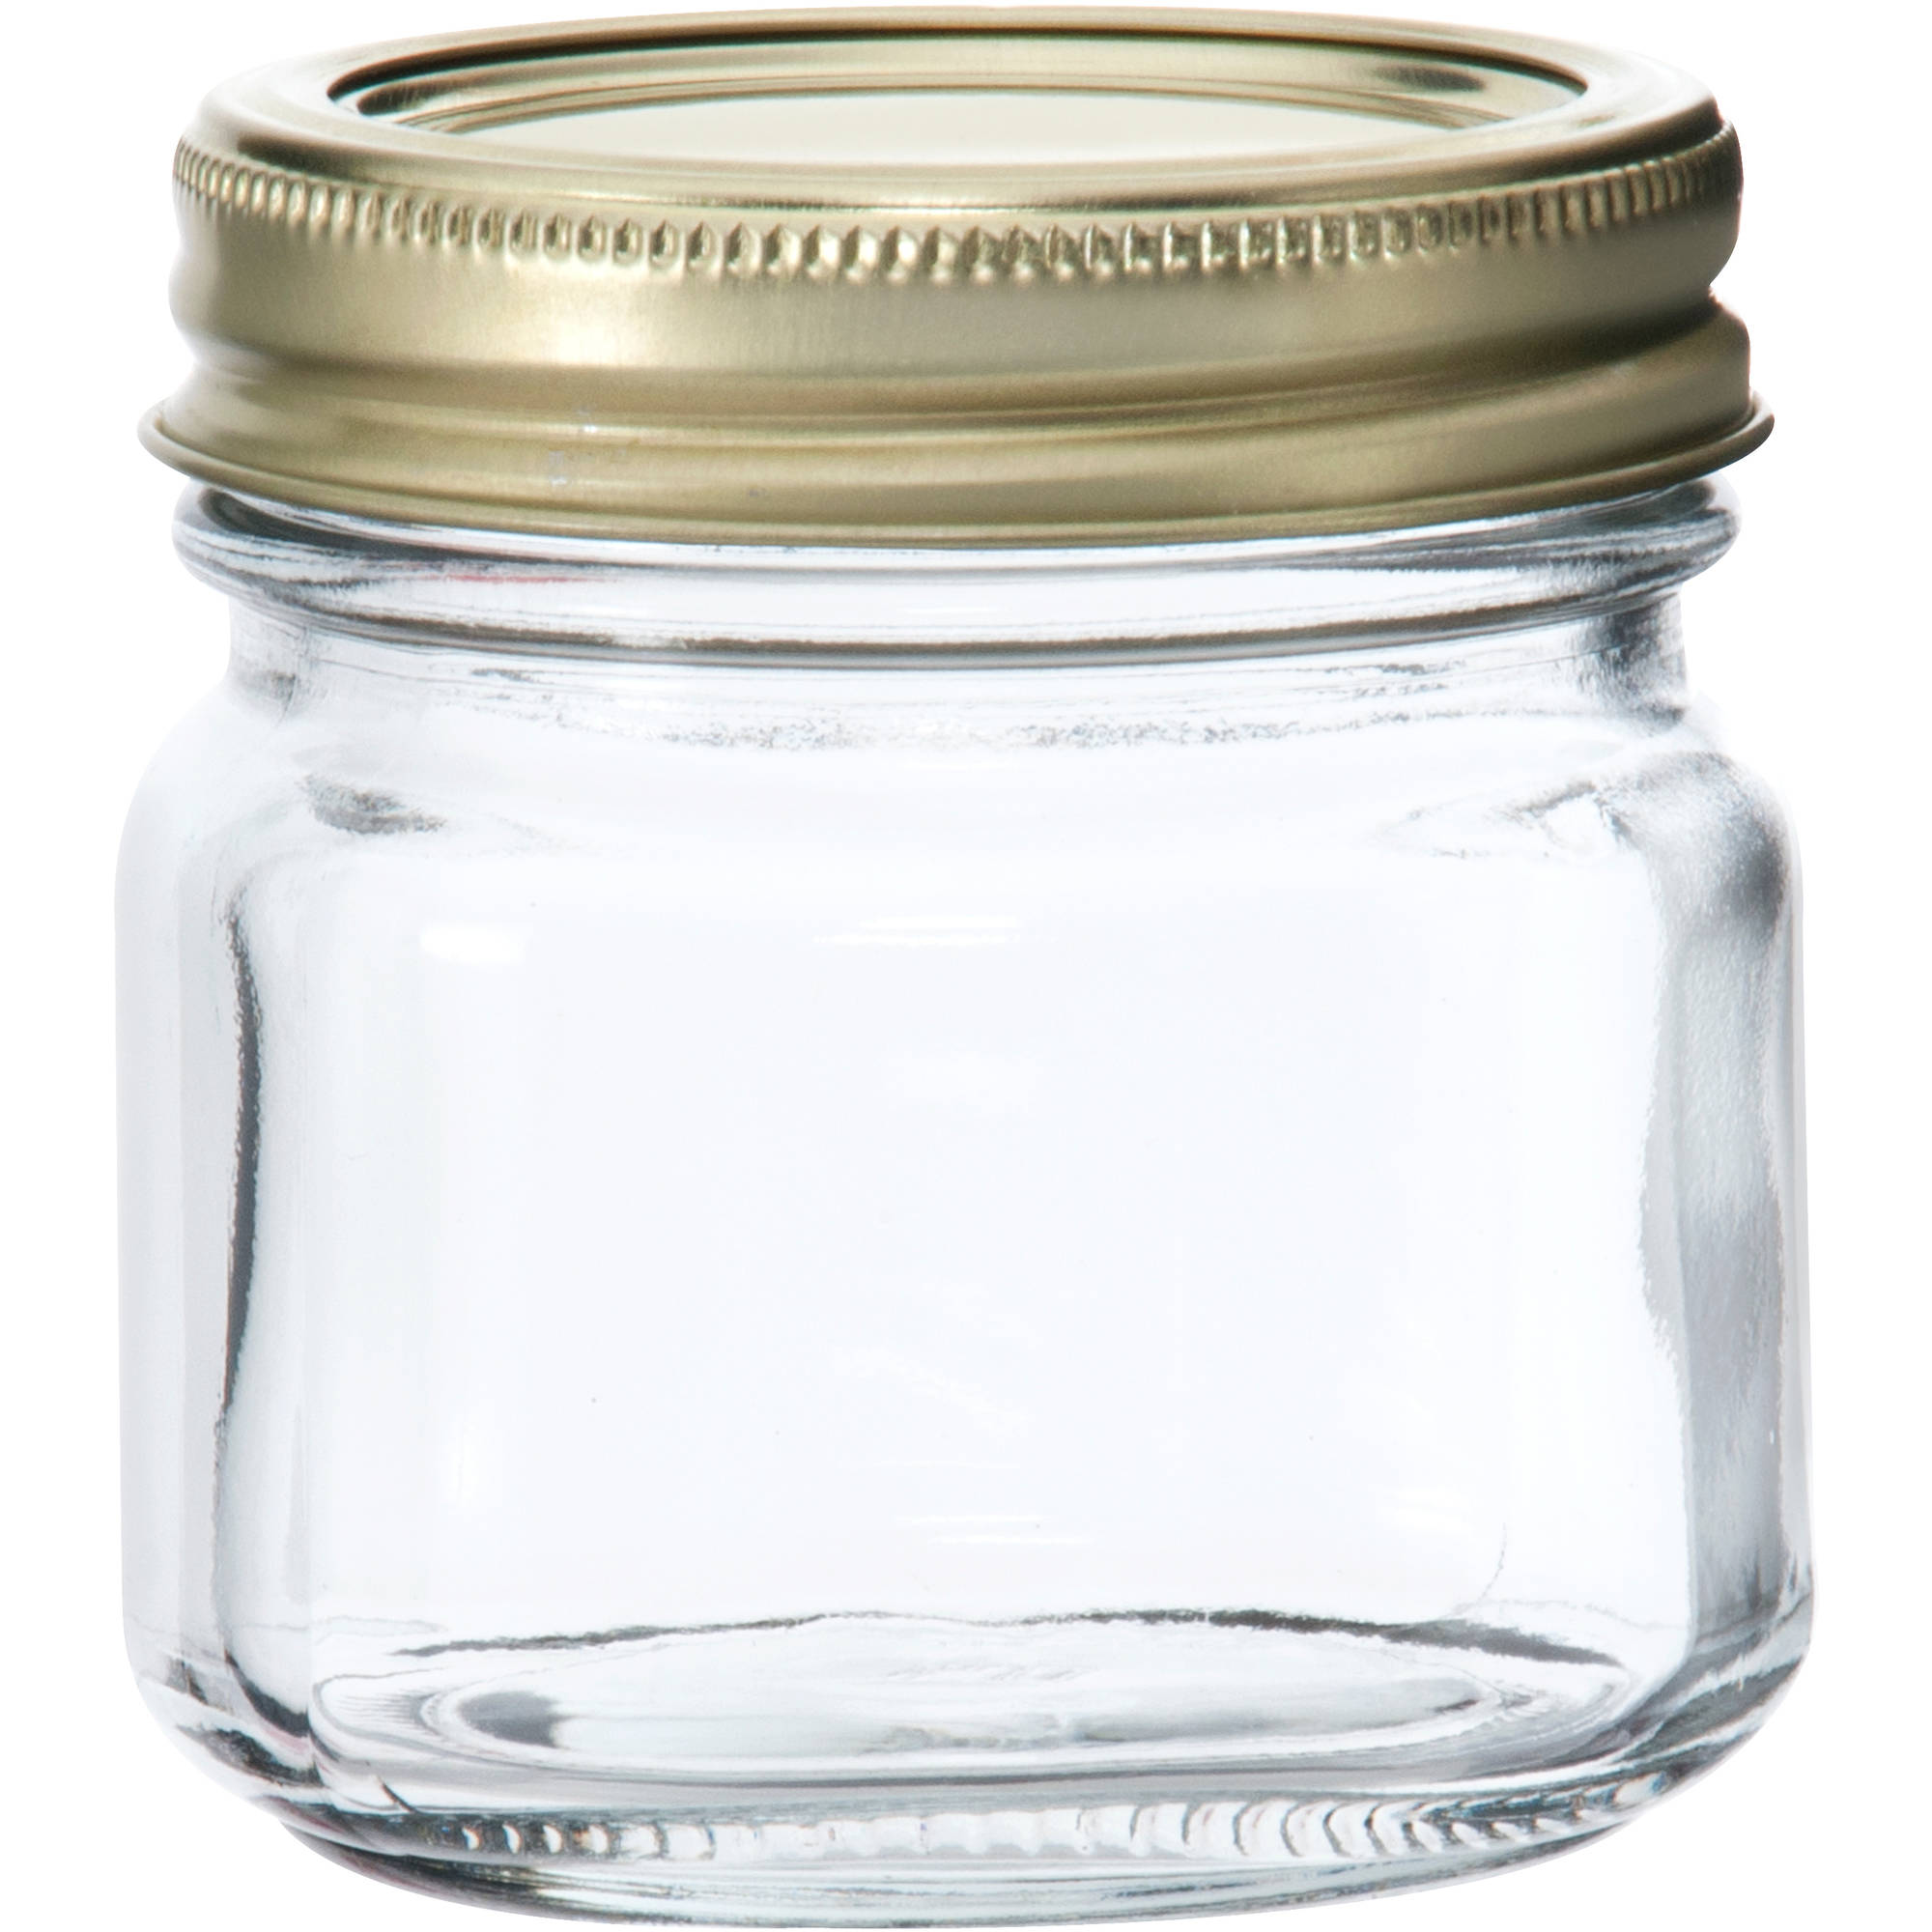 Anchor Hocking Half-Pint Glass Canning Jar Set, 12pk - Walmart.com